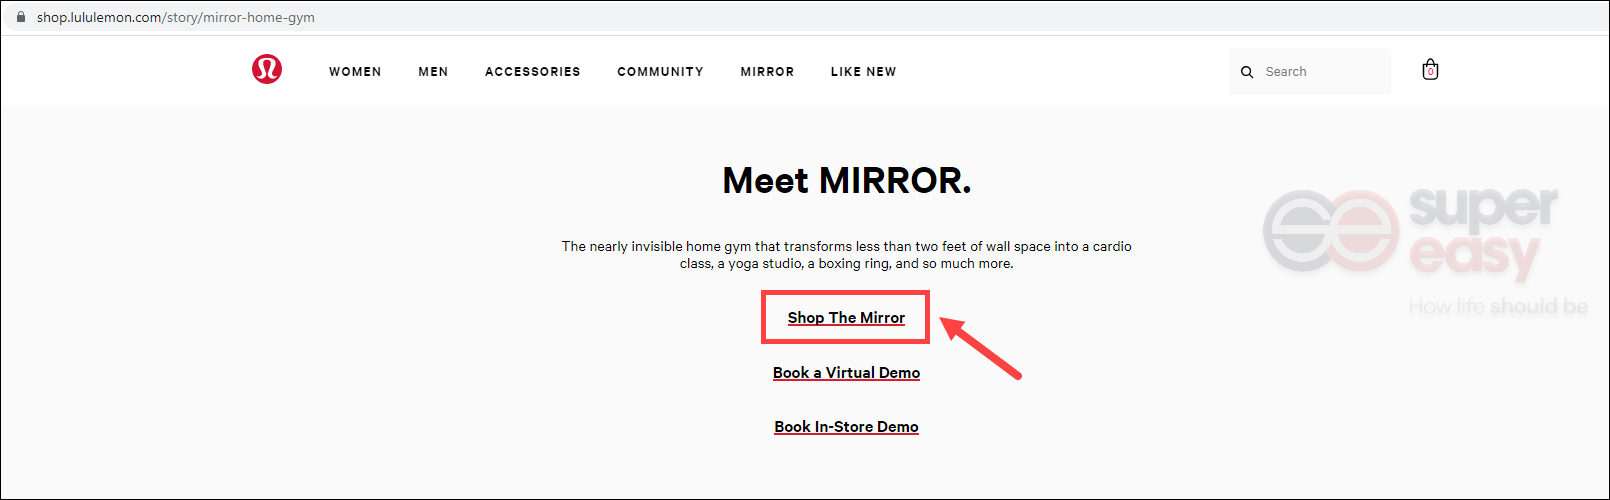 how to redeem a promo code for the mirror Lululemon